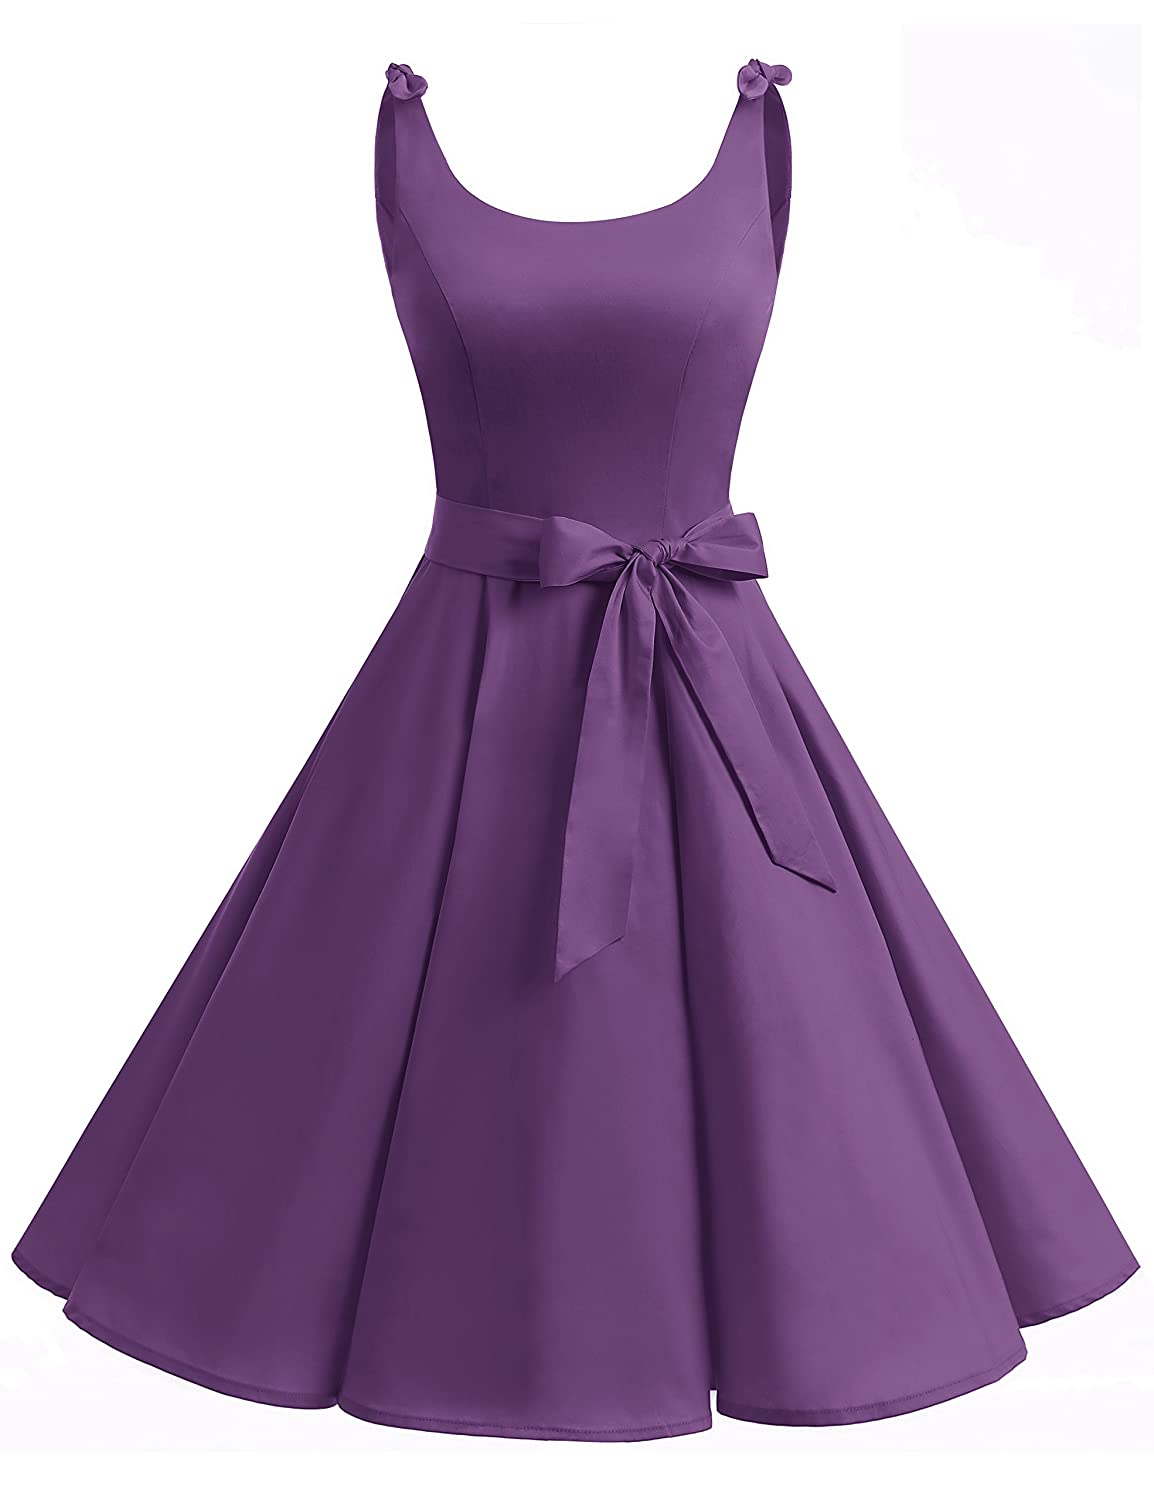 TALLA XL. Bbonlinedress Vestidos de 1950 Estampado Vintage Retro Cóctel Rockabilly con Lazo Purple XL